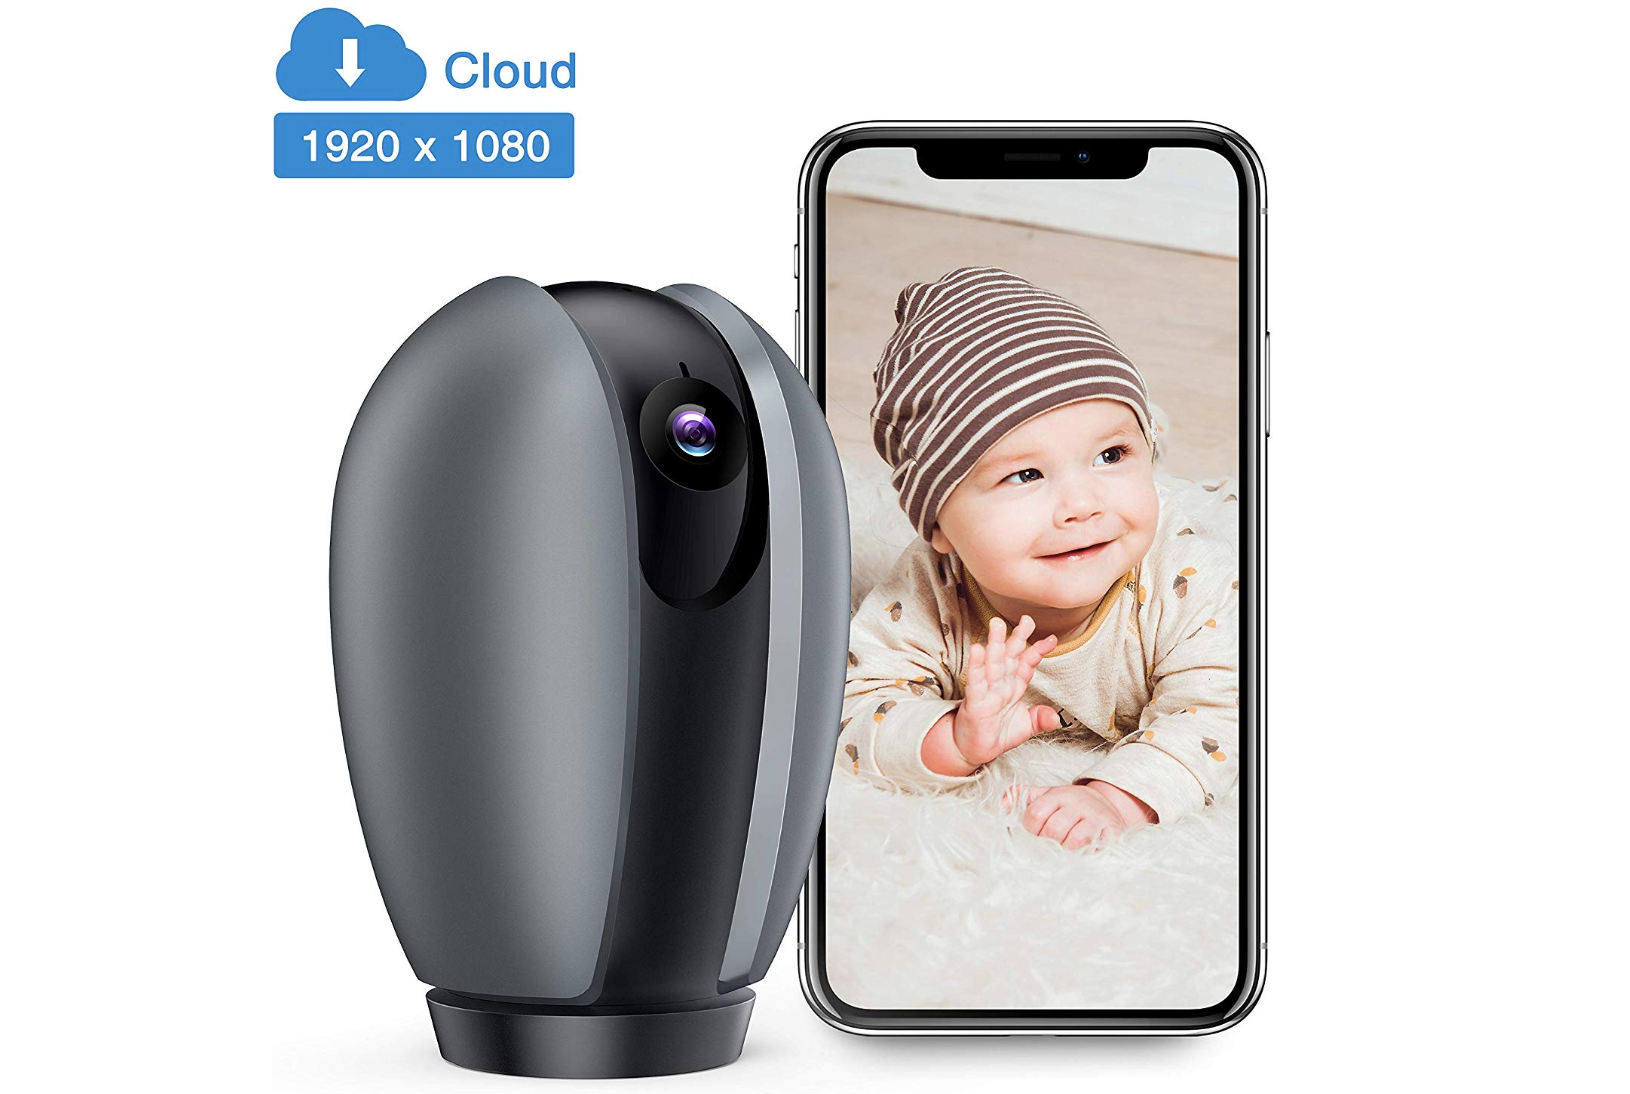 Top 10 Best Baby Monitor Cameras of 2019 Review